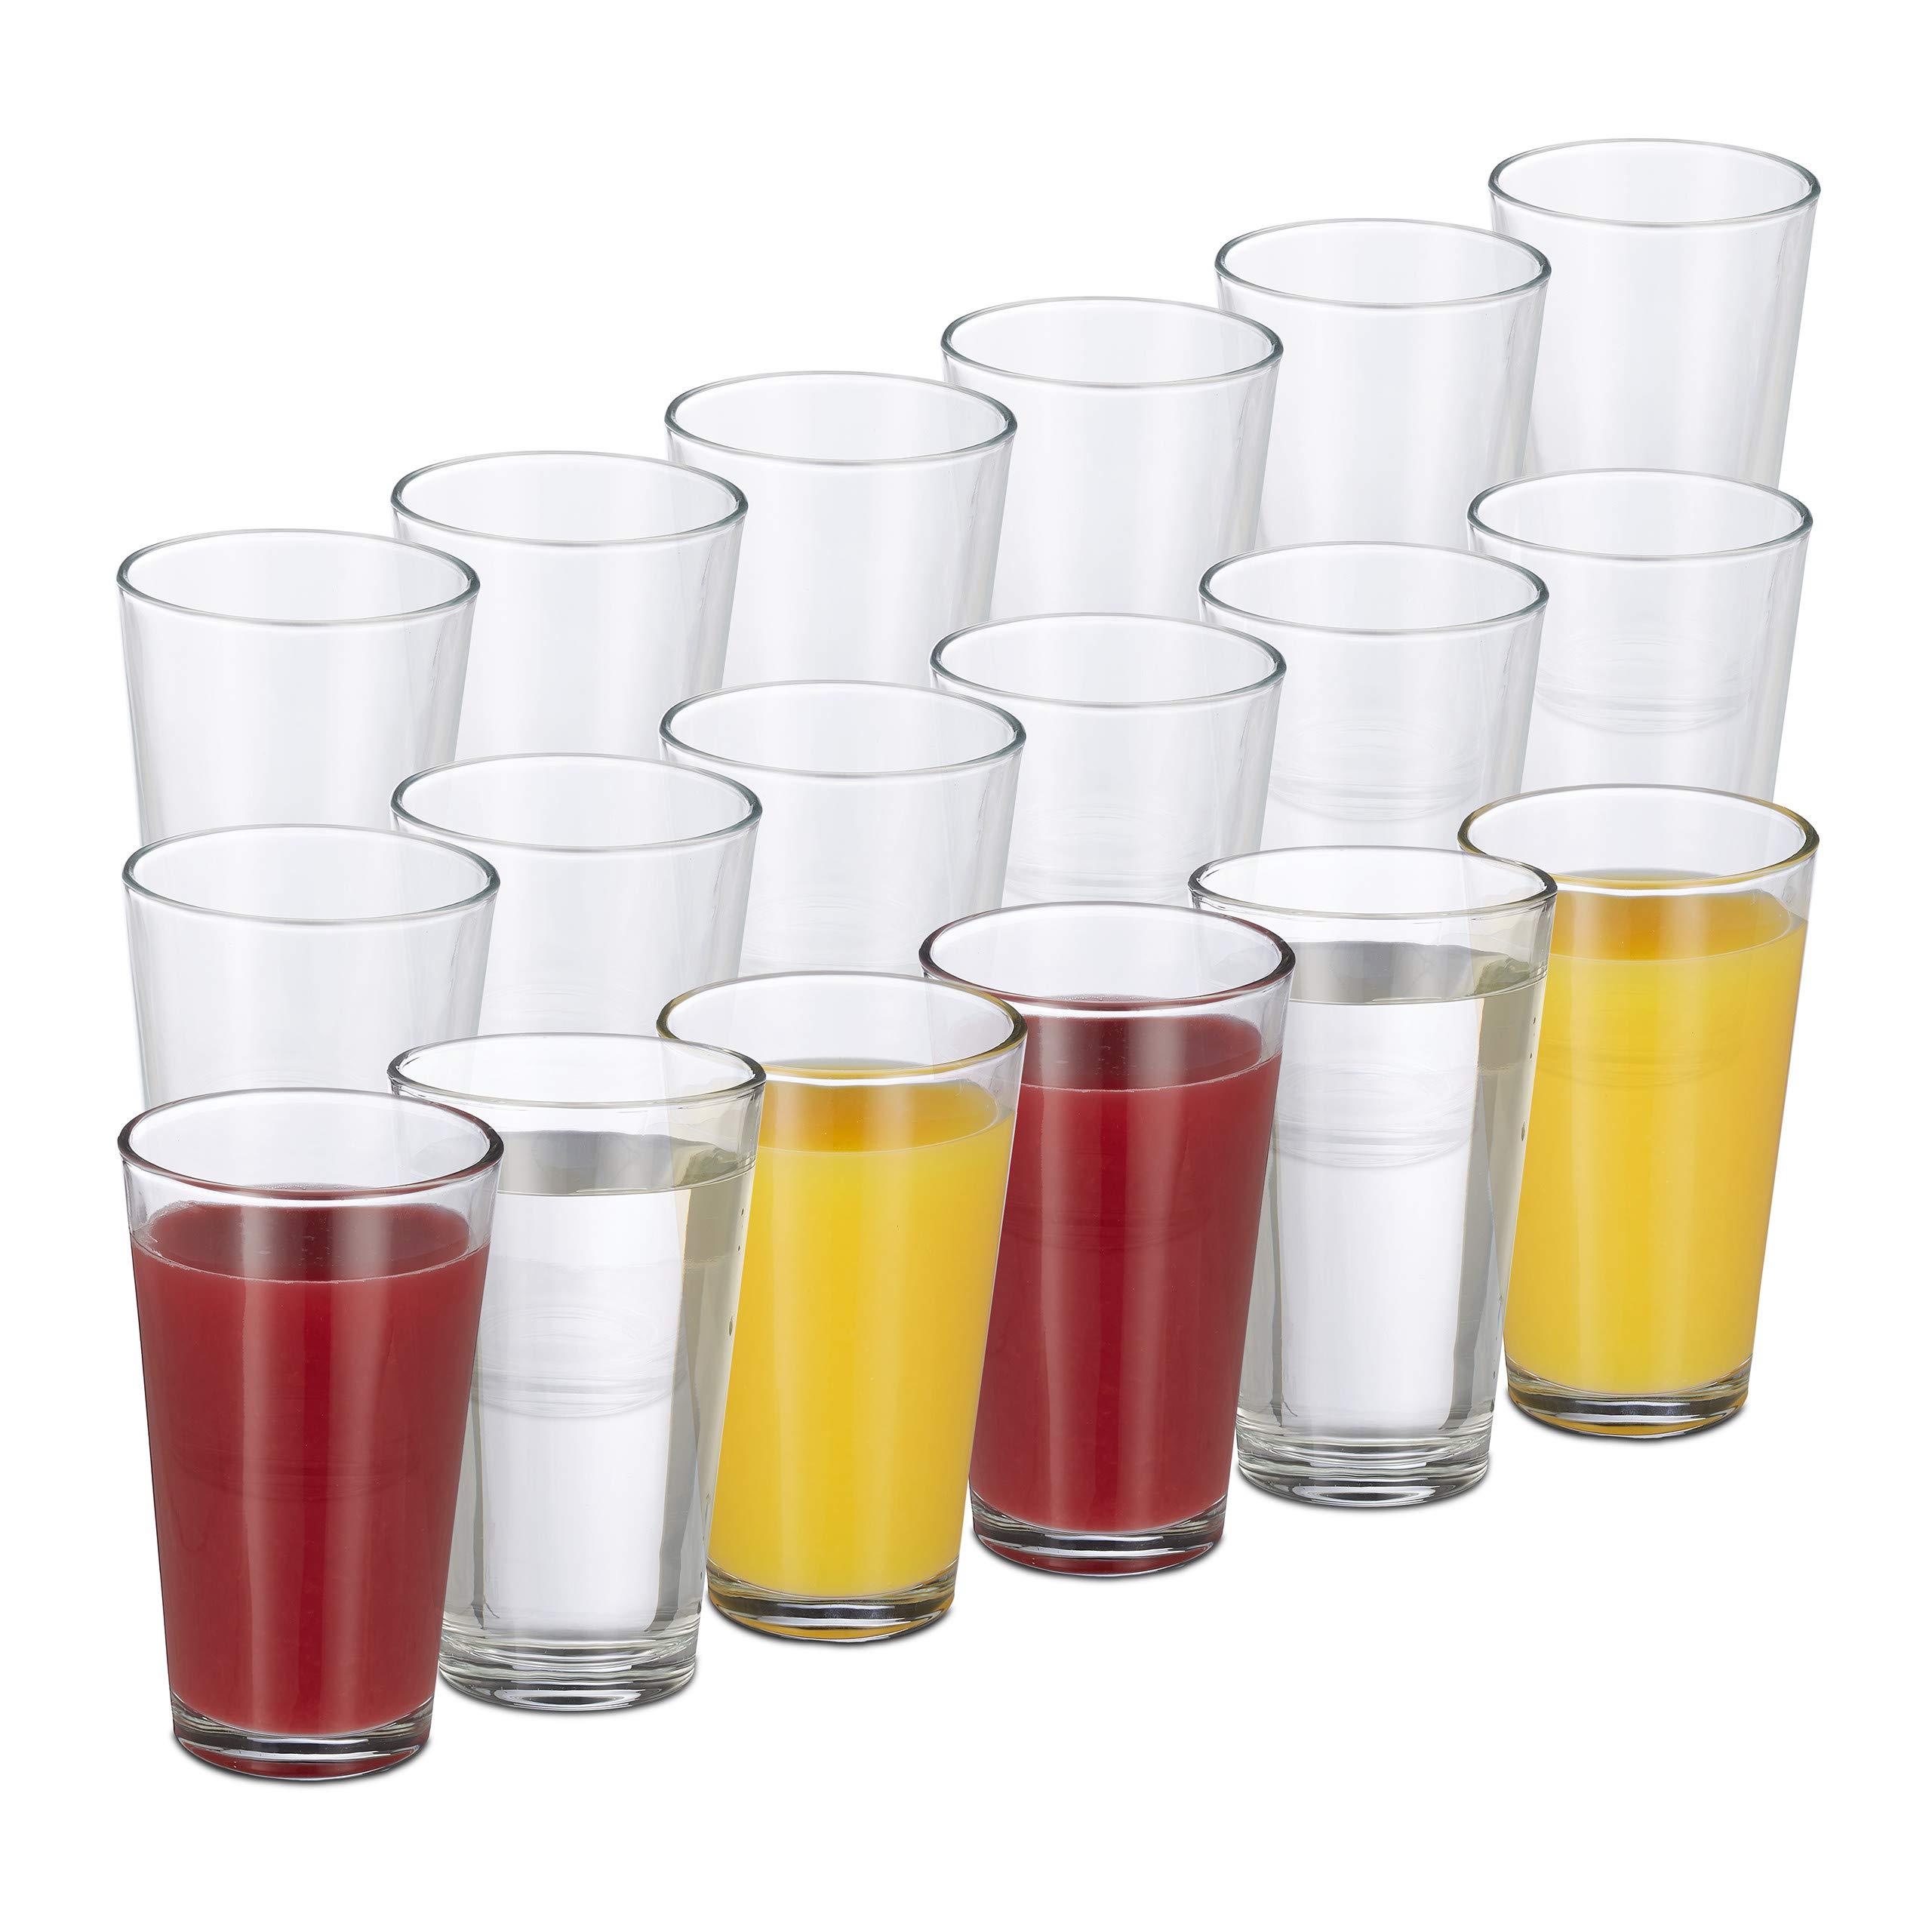 Relaxdays 10023413 Set of 18 Drinking Glasses Thick-Walled Water Glasses Simple Design Dishwasher Safe 500 ml Transparent Glass by Relaxdays (Image #1)